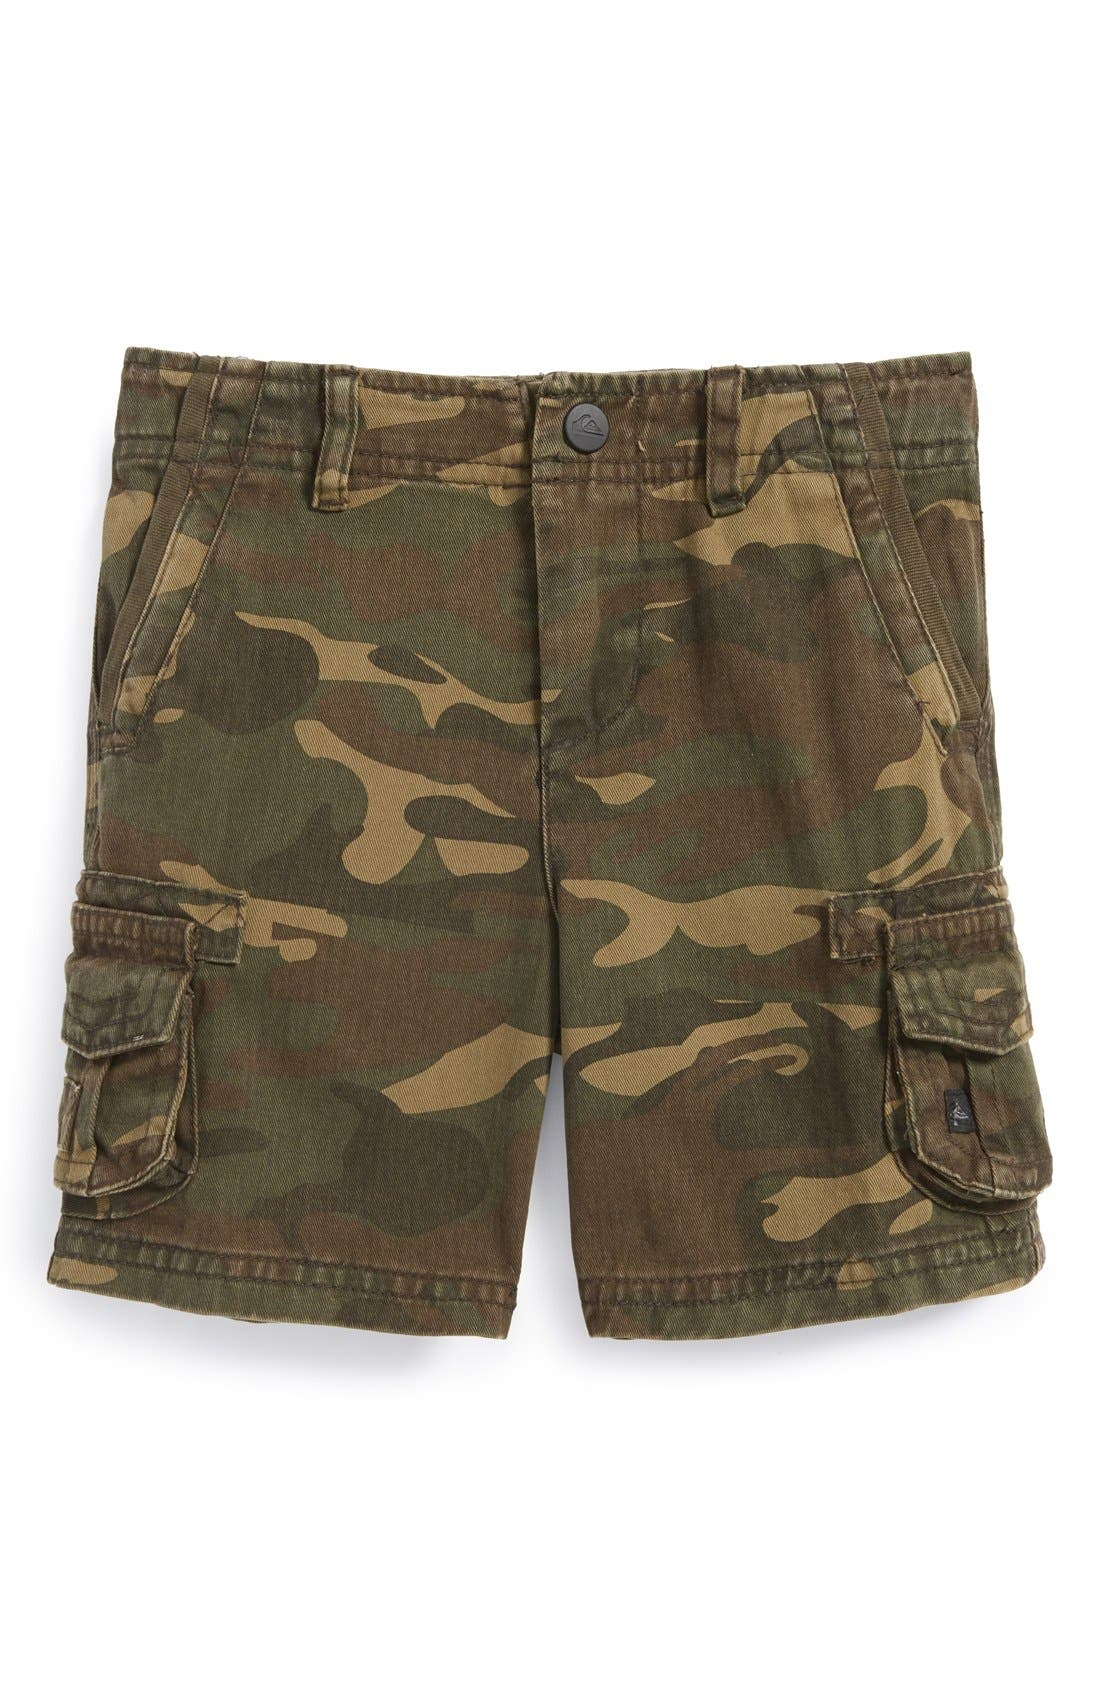 Alternate Image 1 Selected - Quiksilver 'Deluxe' Cotton Twill Cargo Shorts (Baby Boys)